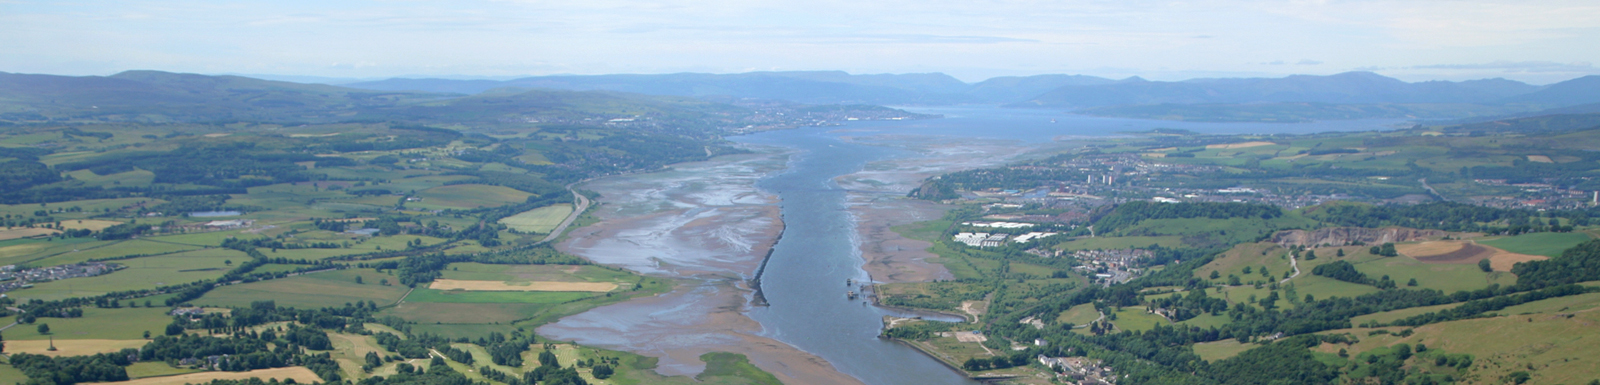 The River Clyde meets the Firth of Clyde at Dumbarton